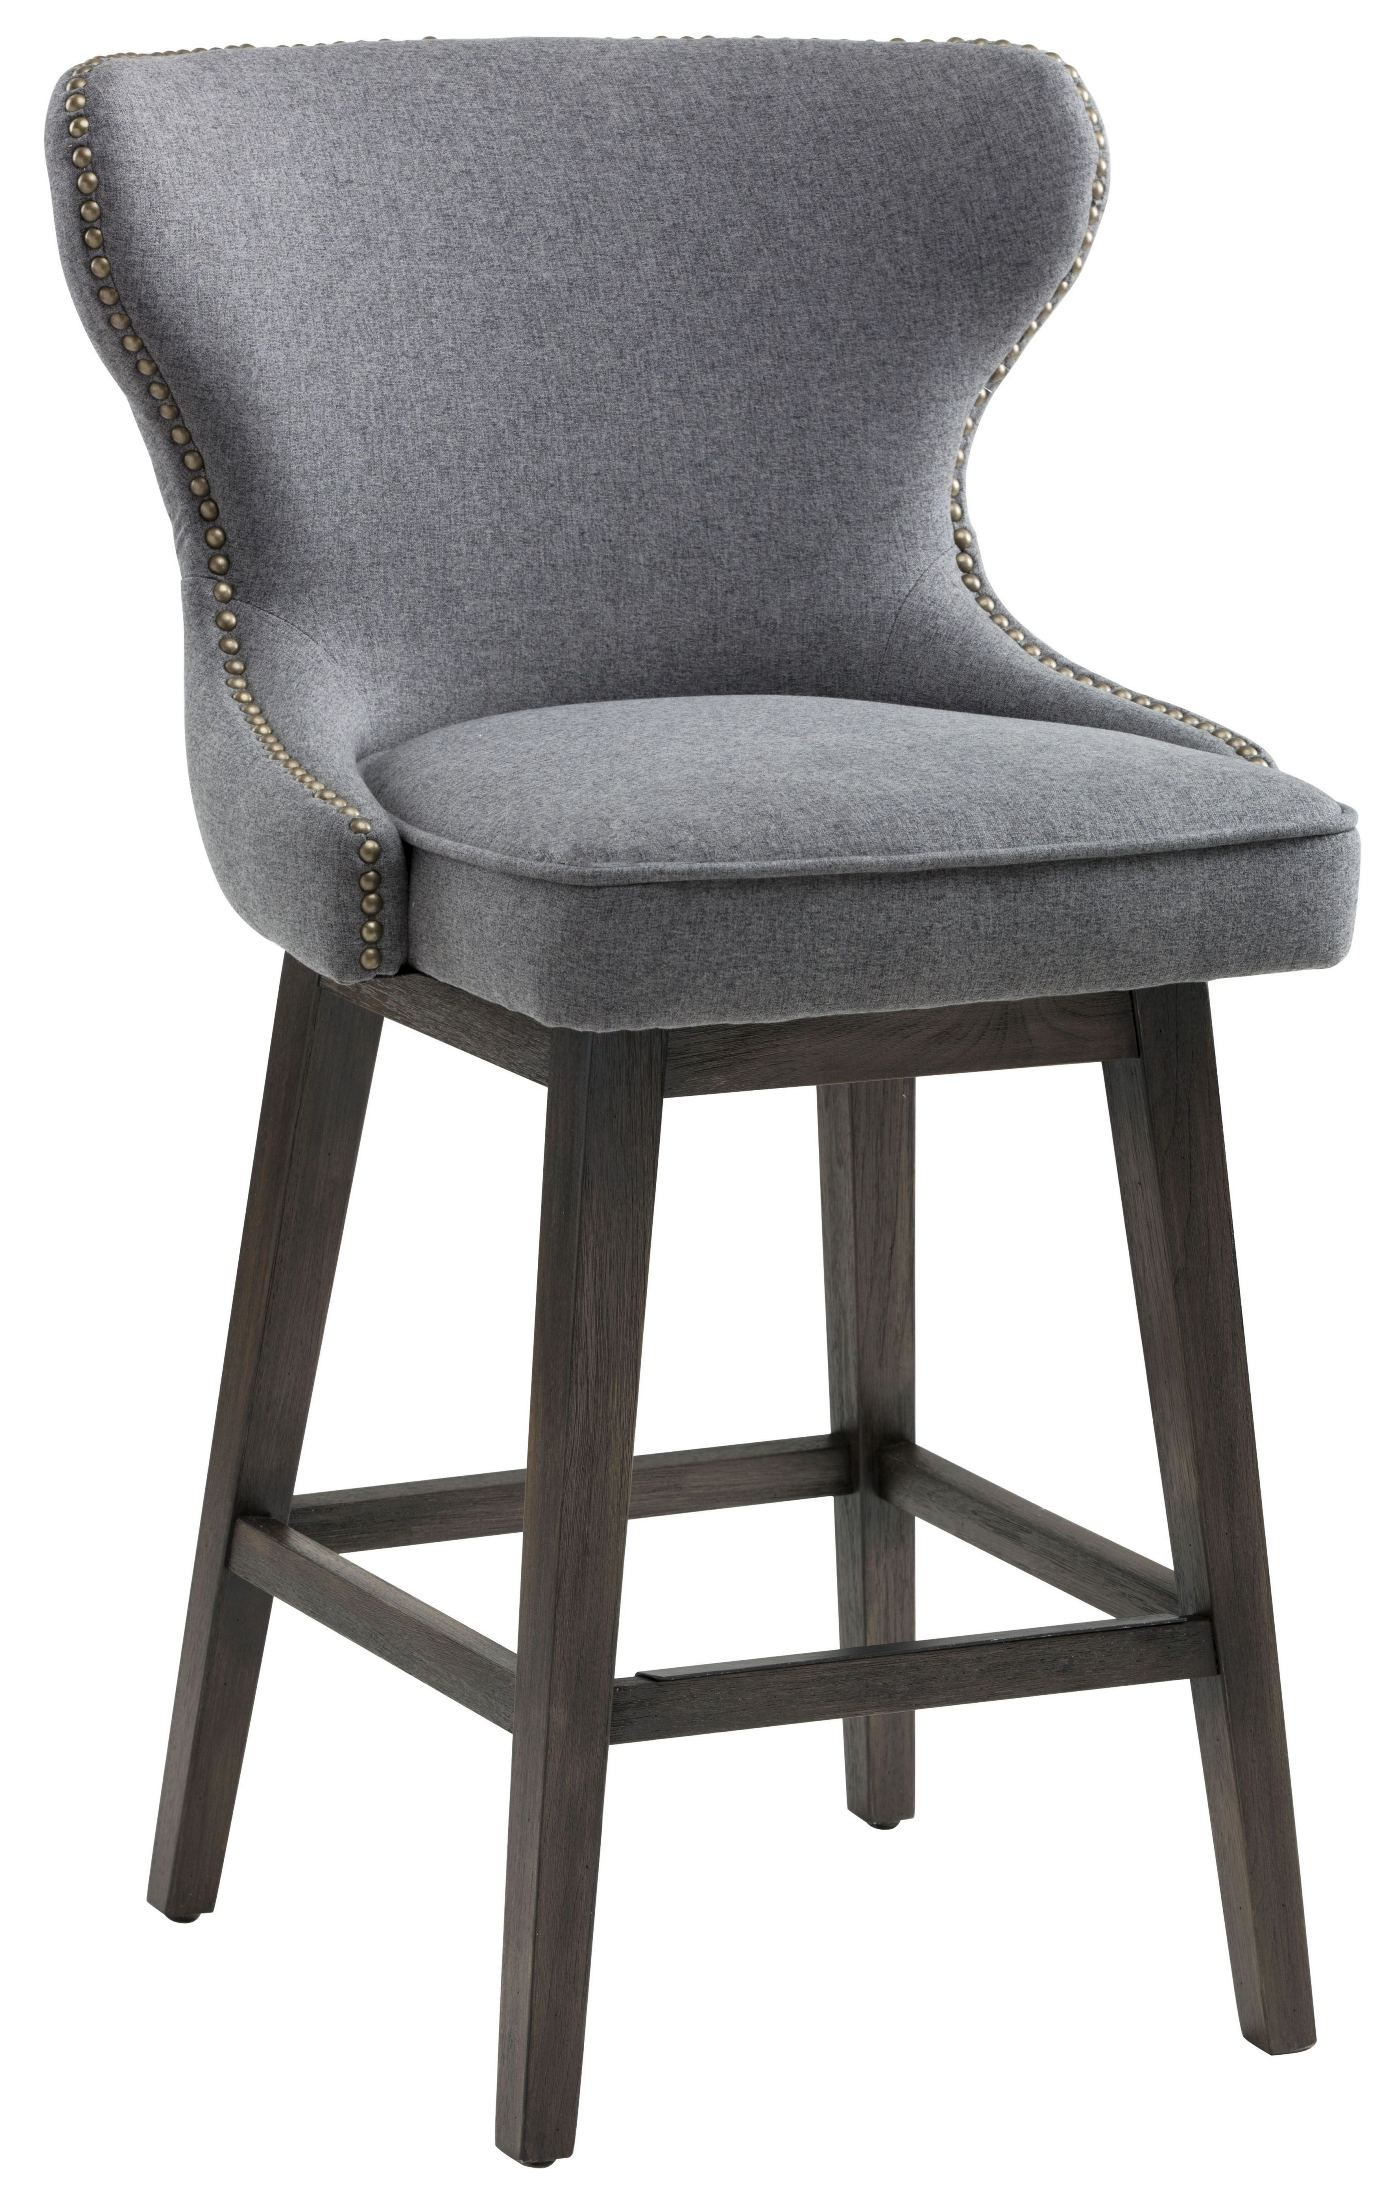 ariana dark grey fabric swivel counter stool from sunpan coleman furniture. Black Bedroom Furniture Sets. Home Design Ideas